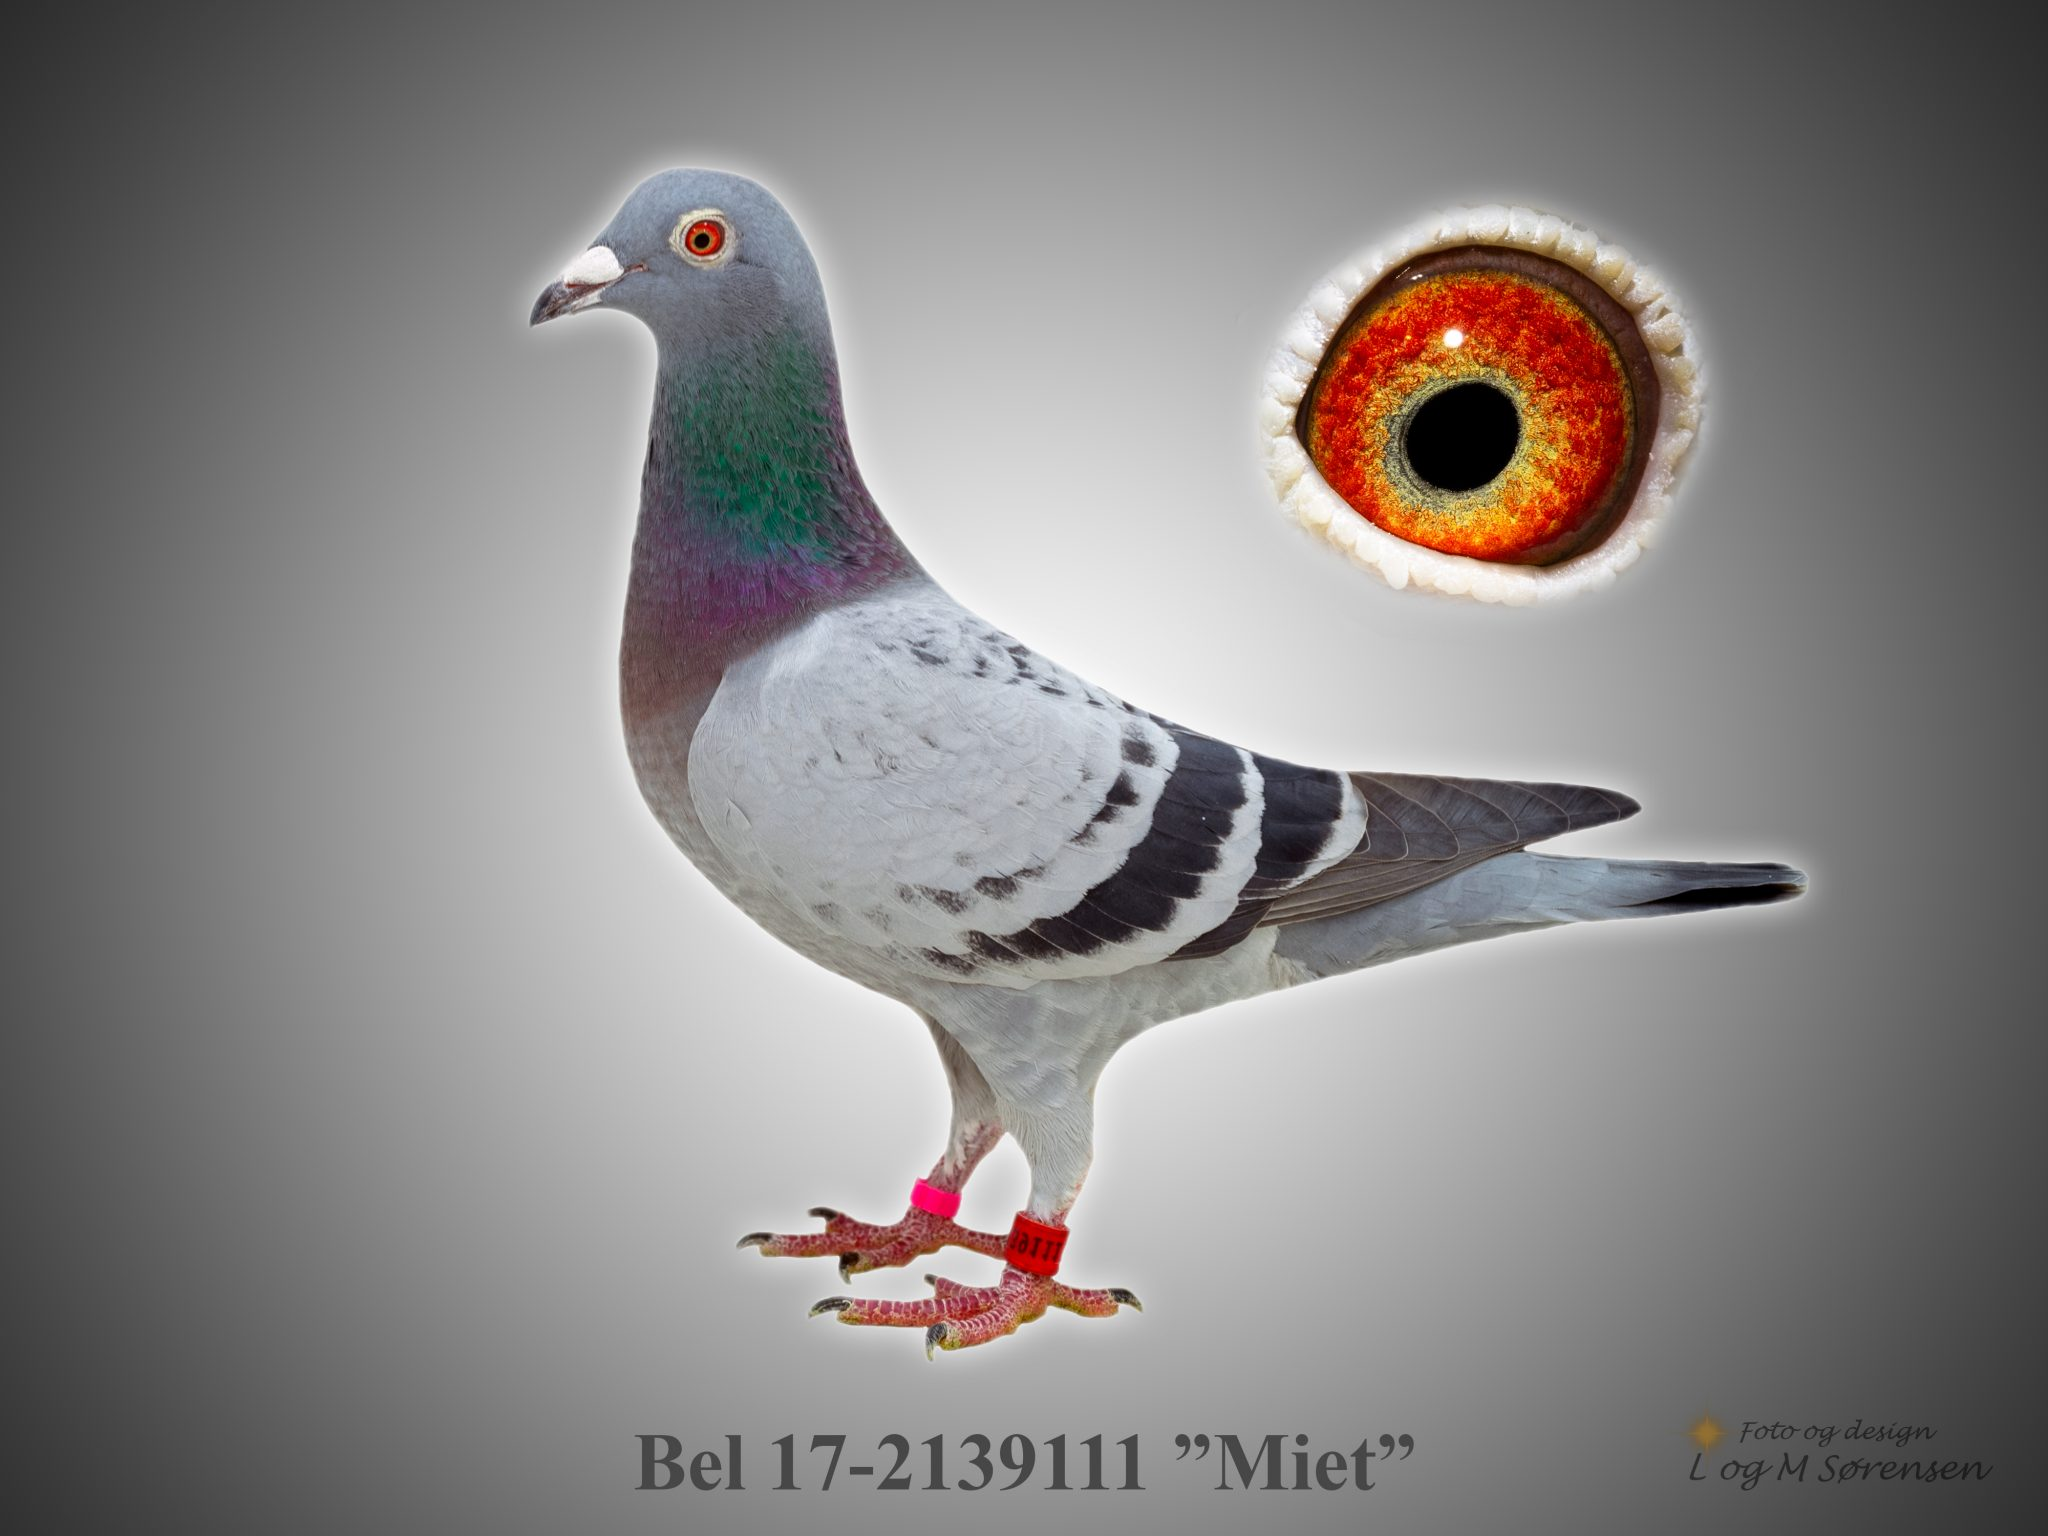 "Rede 3 A Bel 17-2139111 ""Miet"""